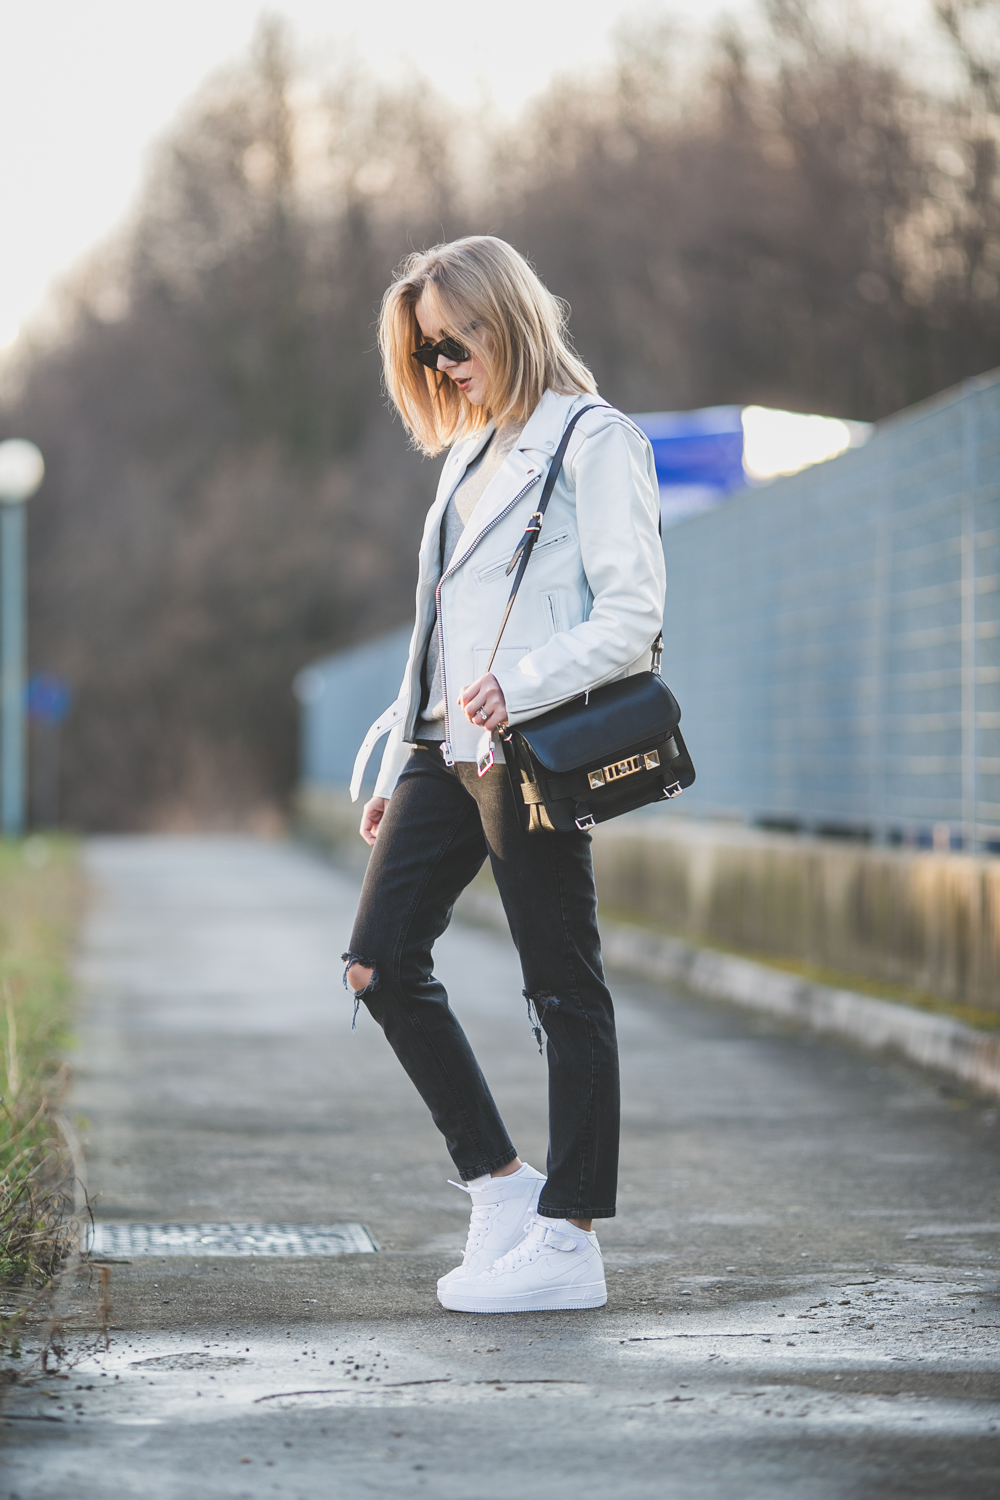 darya kamalova thecablook fashion lifestyle russian italian blogger wears asos total look with nike white air force and proenza schouler ps11 black bag-9685